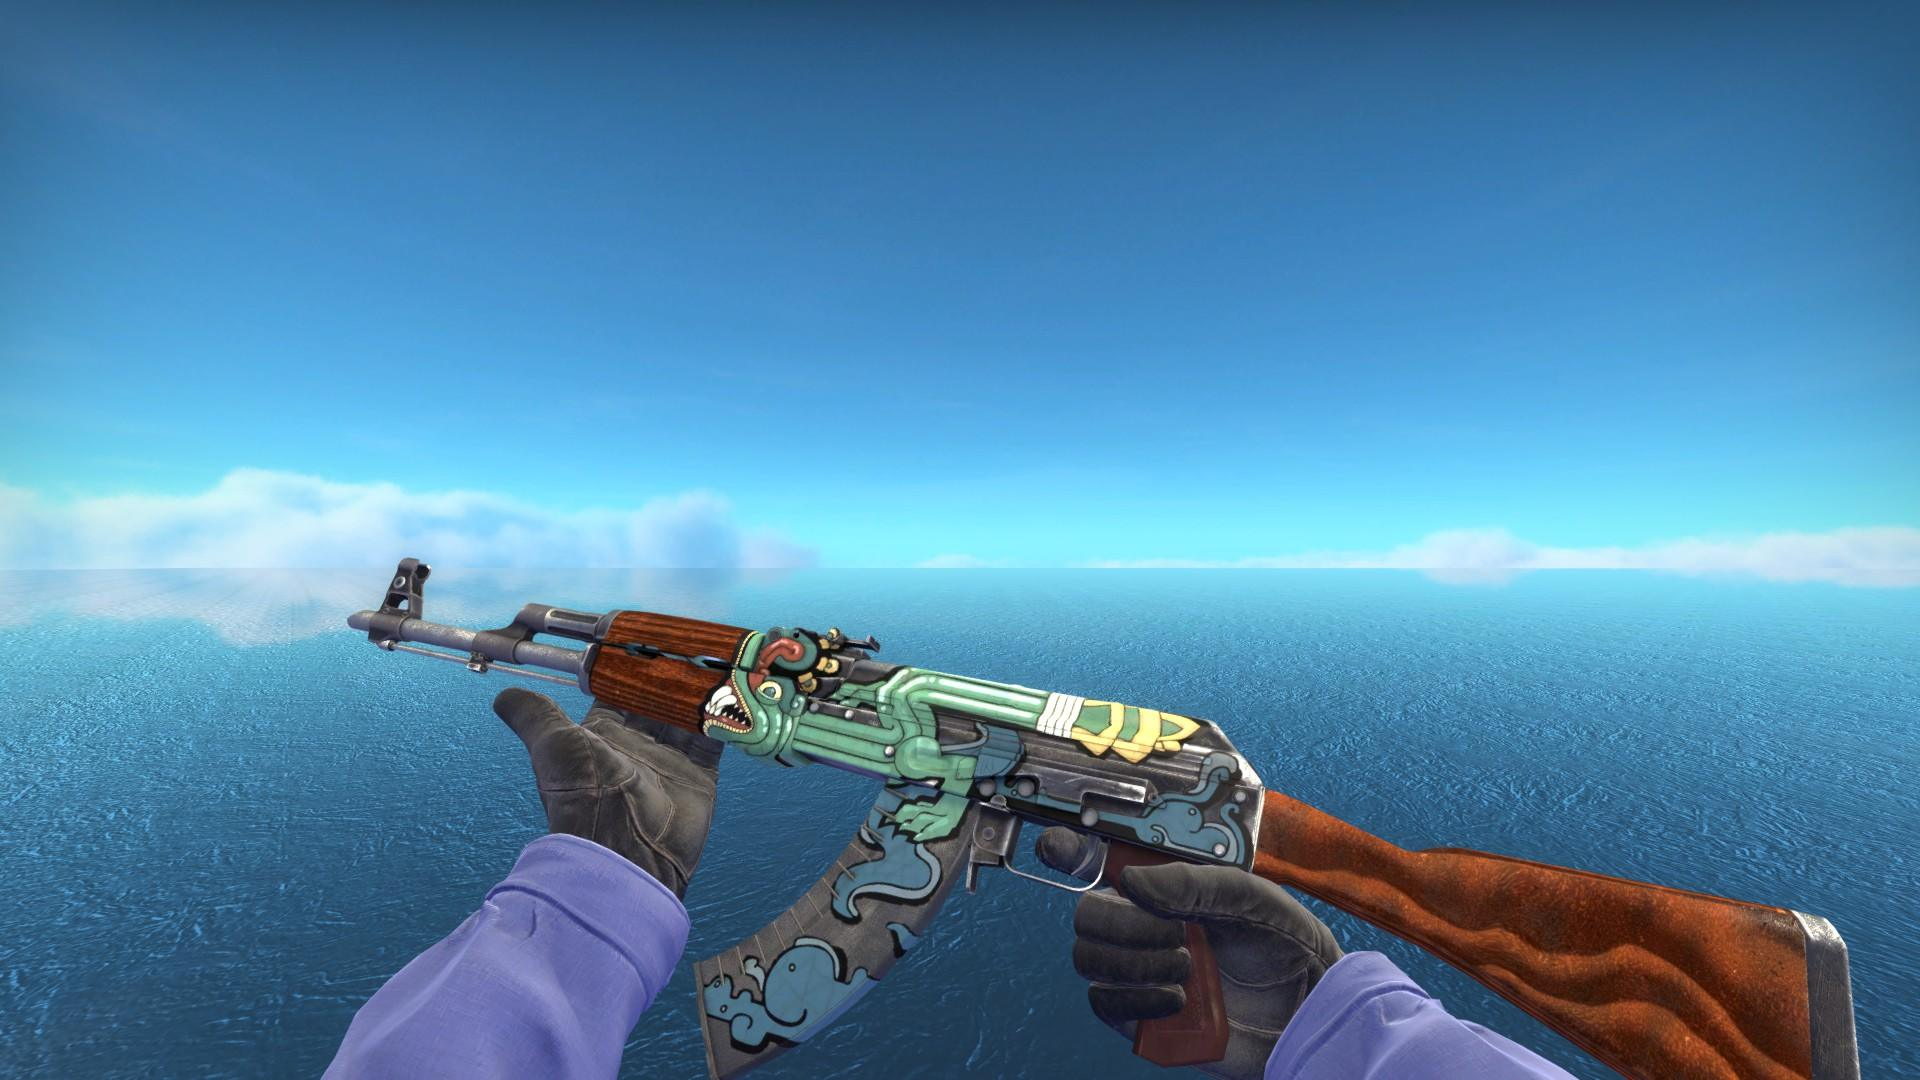 selling store m4a4 howl factory ak 47 fire serpent pics look